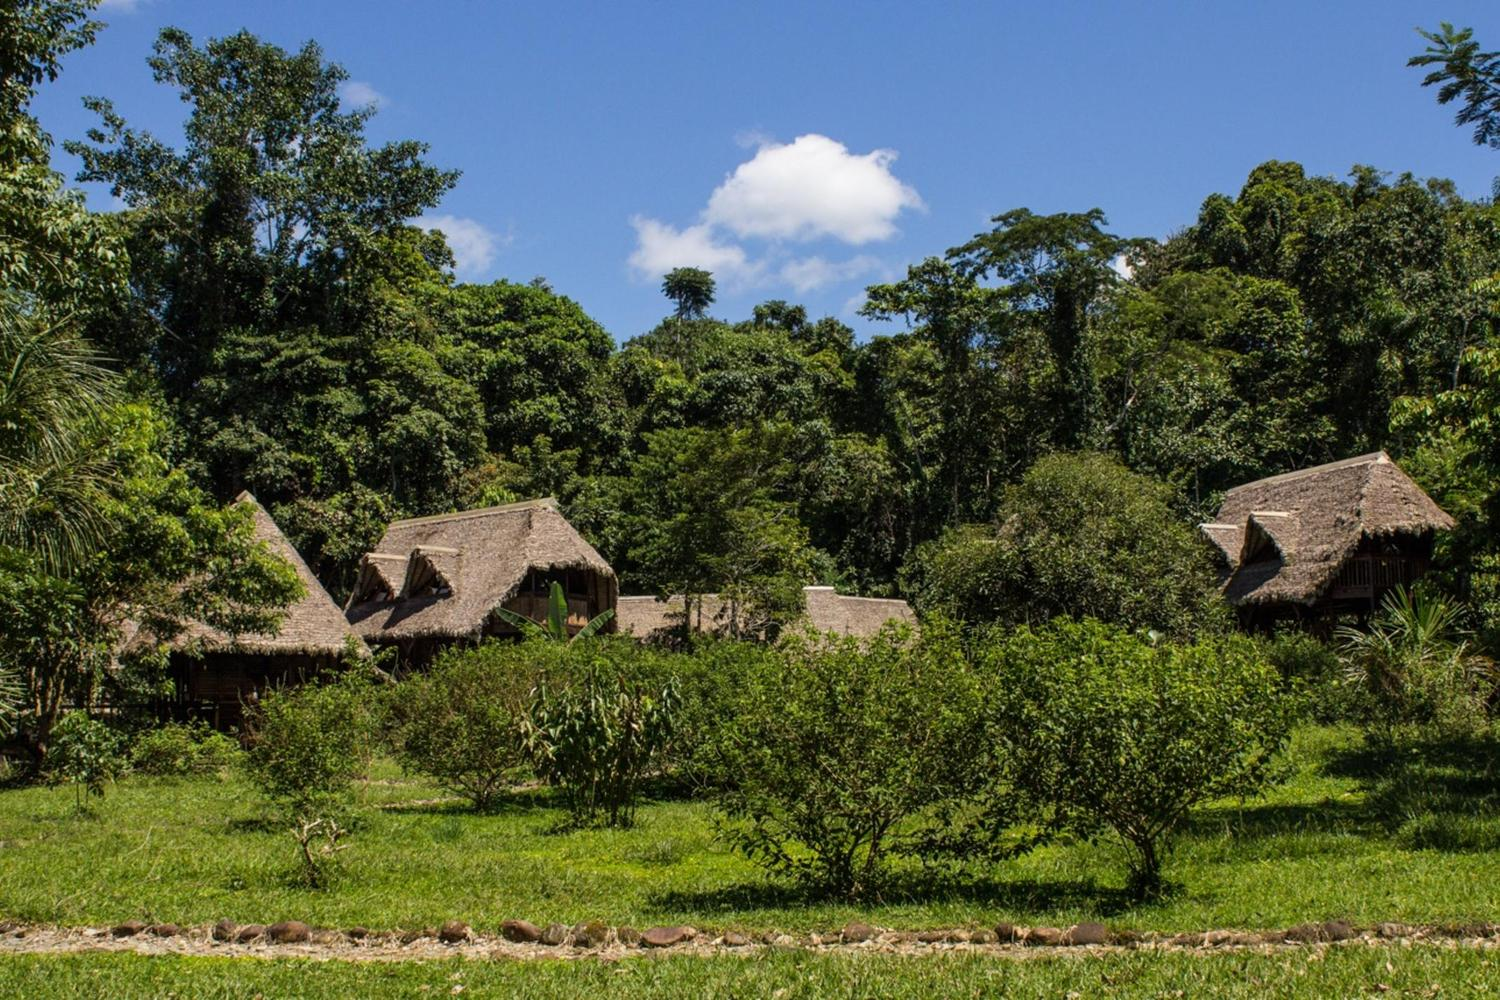 The Manu Learning Center lodge is set in the heart of the Manu biosphere reserve